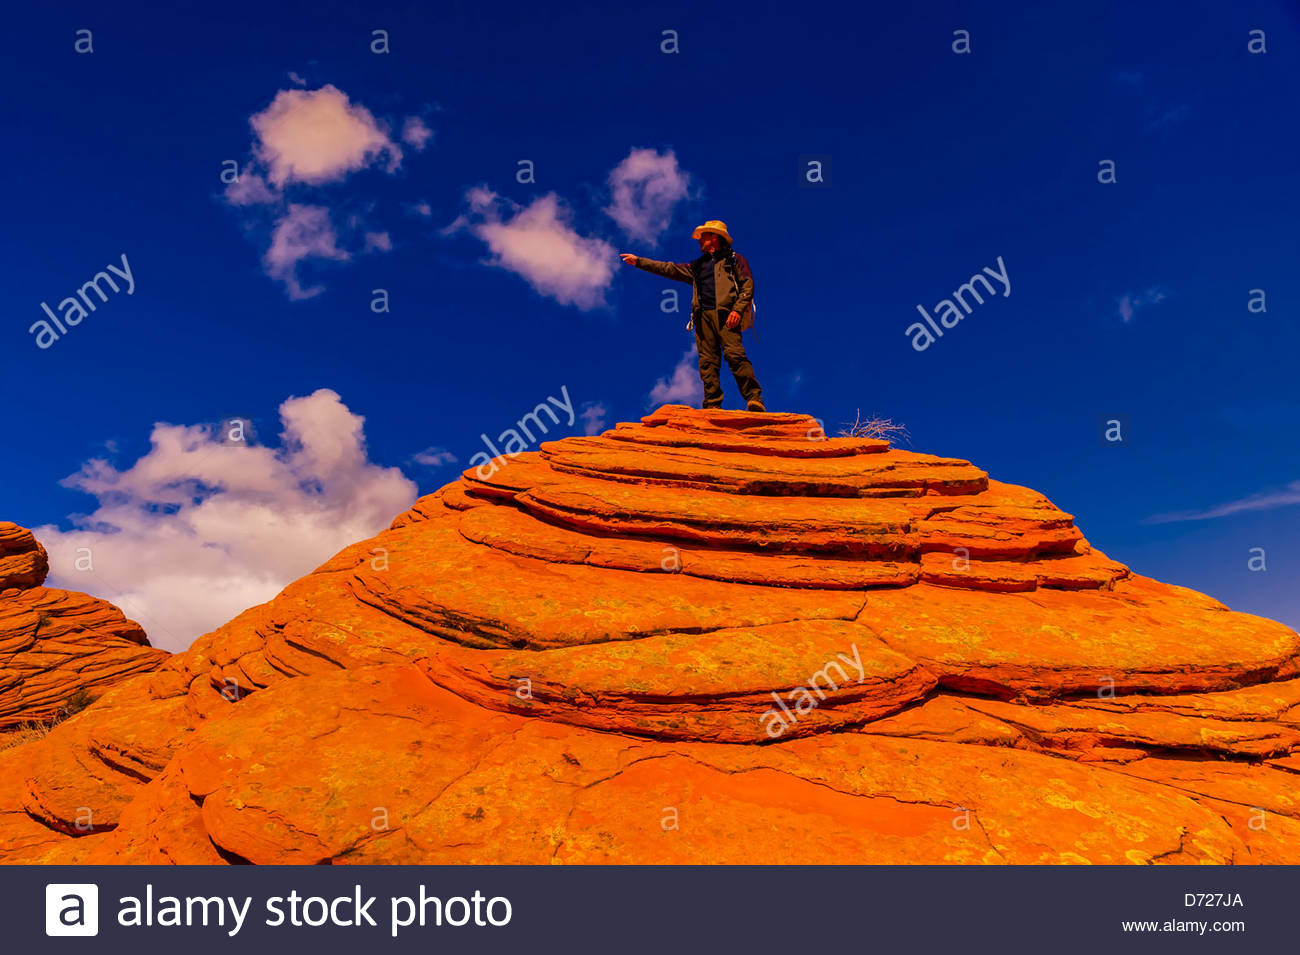 Hiking in Coyote Buttes North, Paria Canyon-Vermillion Cliffs Wilderness Area, Utah-Arizona border, USA Stock Photo